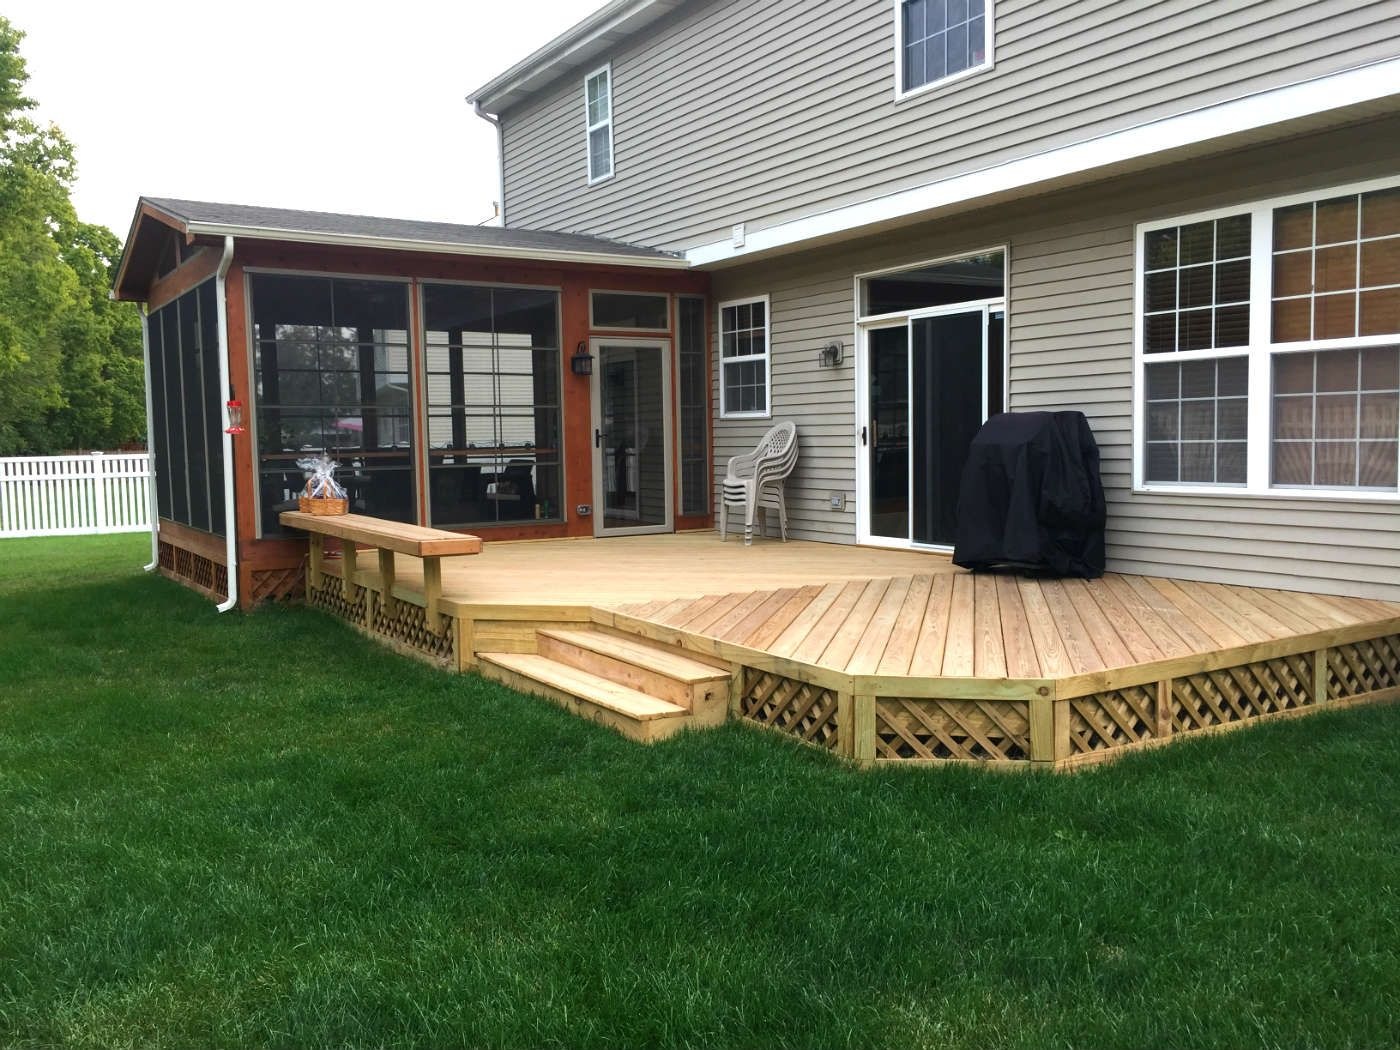 This Screened Porch And Deck Combination Were Custom Designed And Built By New Lenox Il Screened Porch De Wood Deck Designs Backyard Patio Designs Deck Design